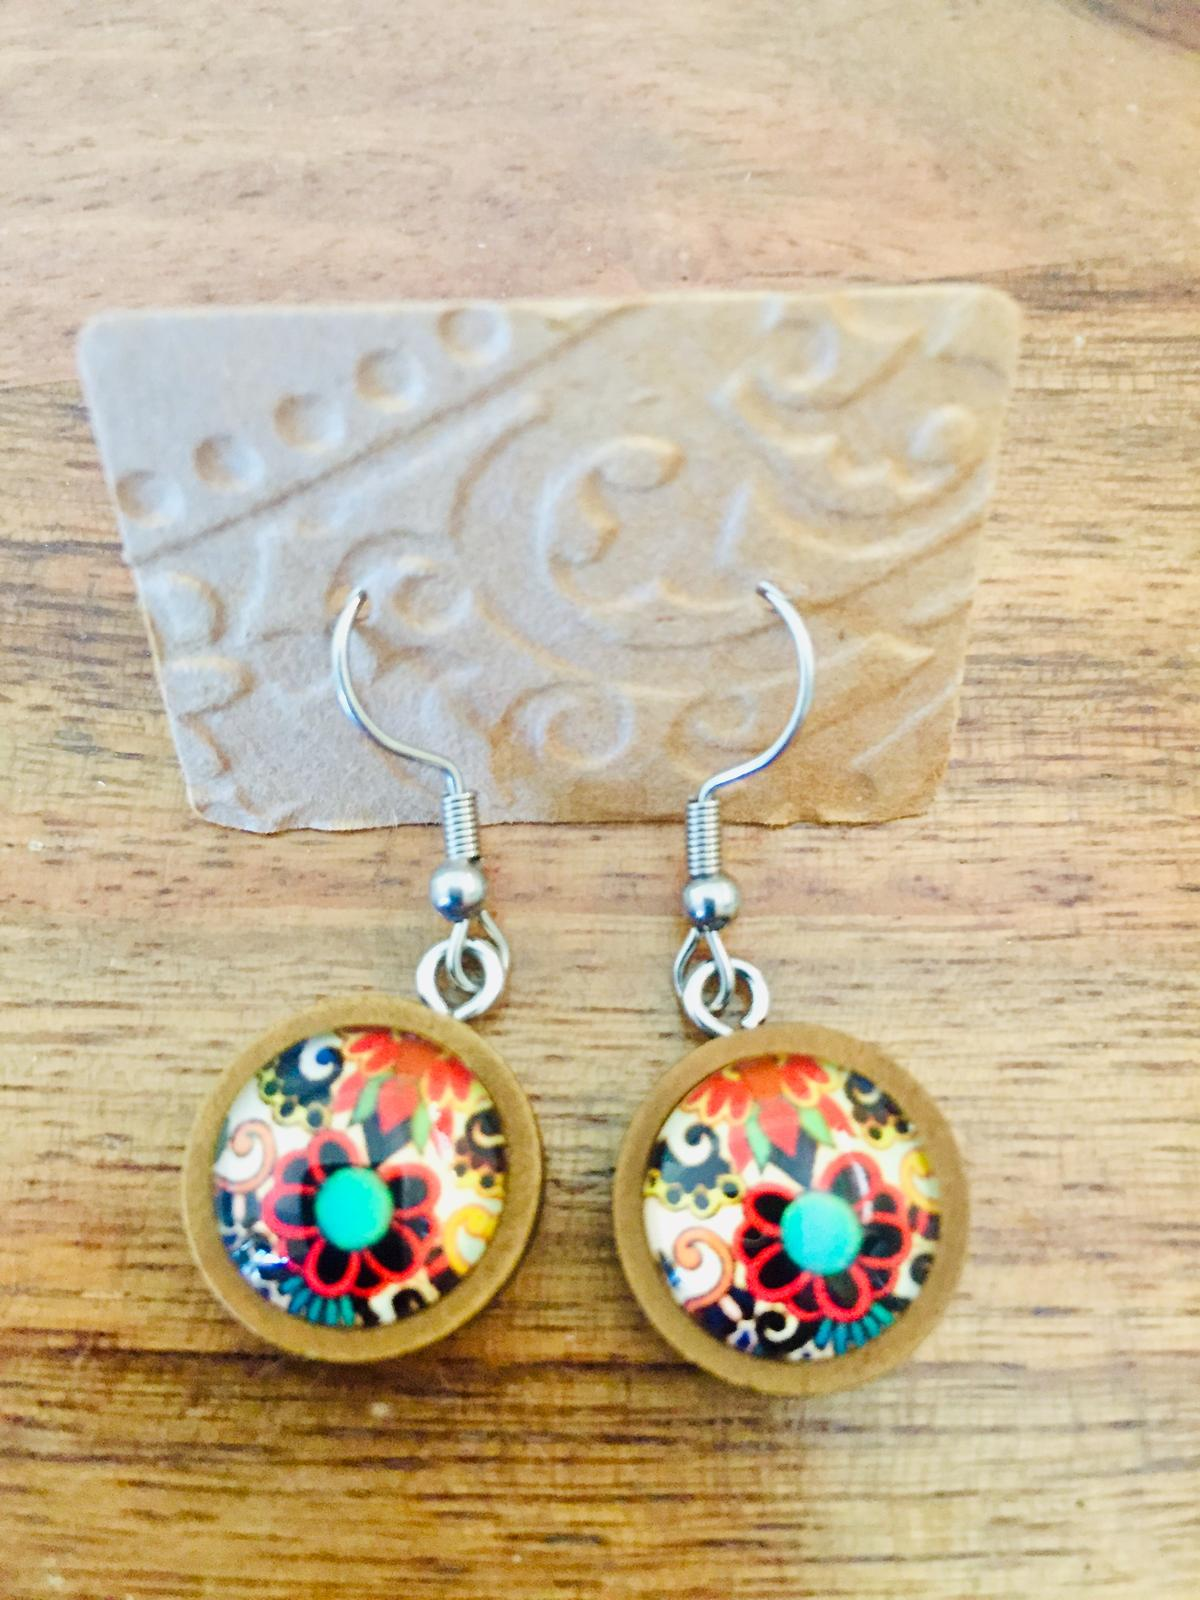 Cabouchon earrings dangly